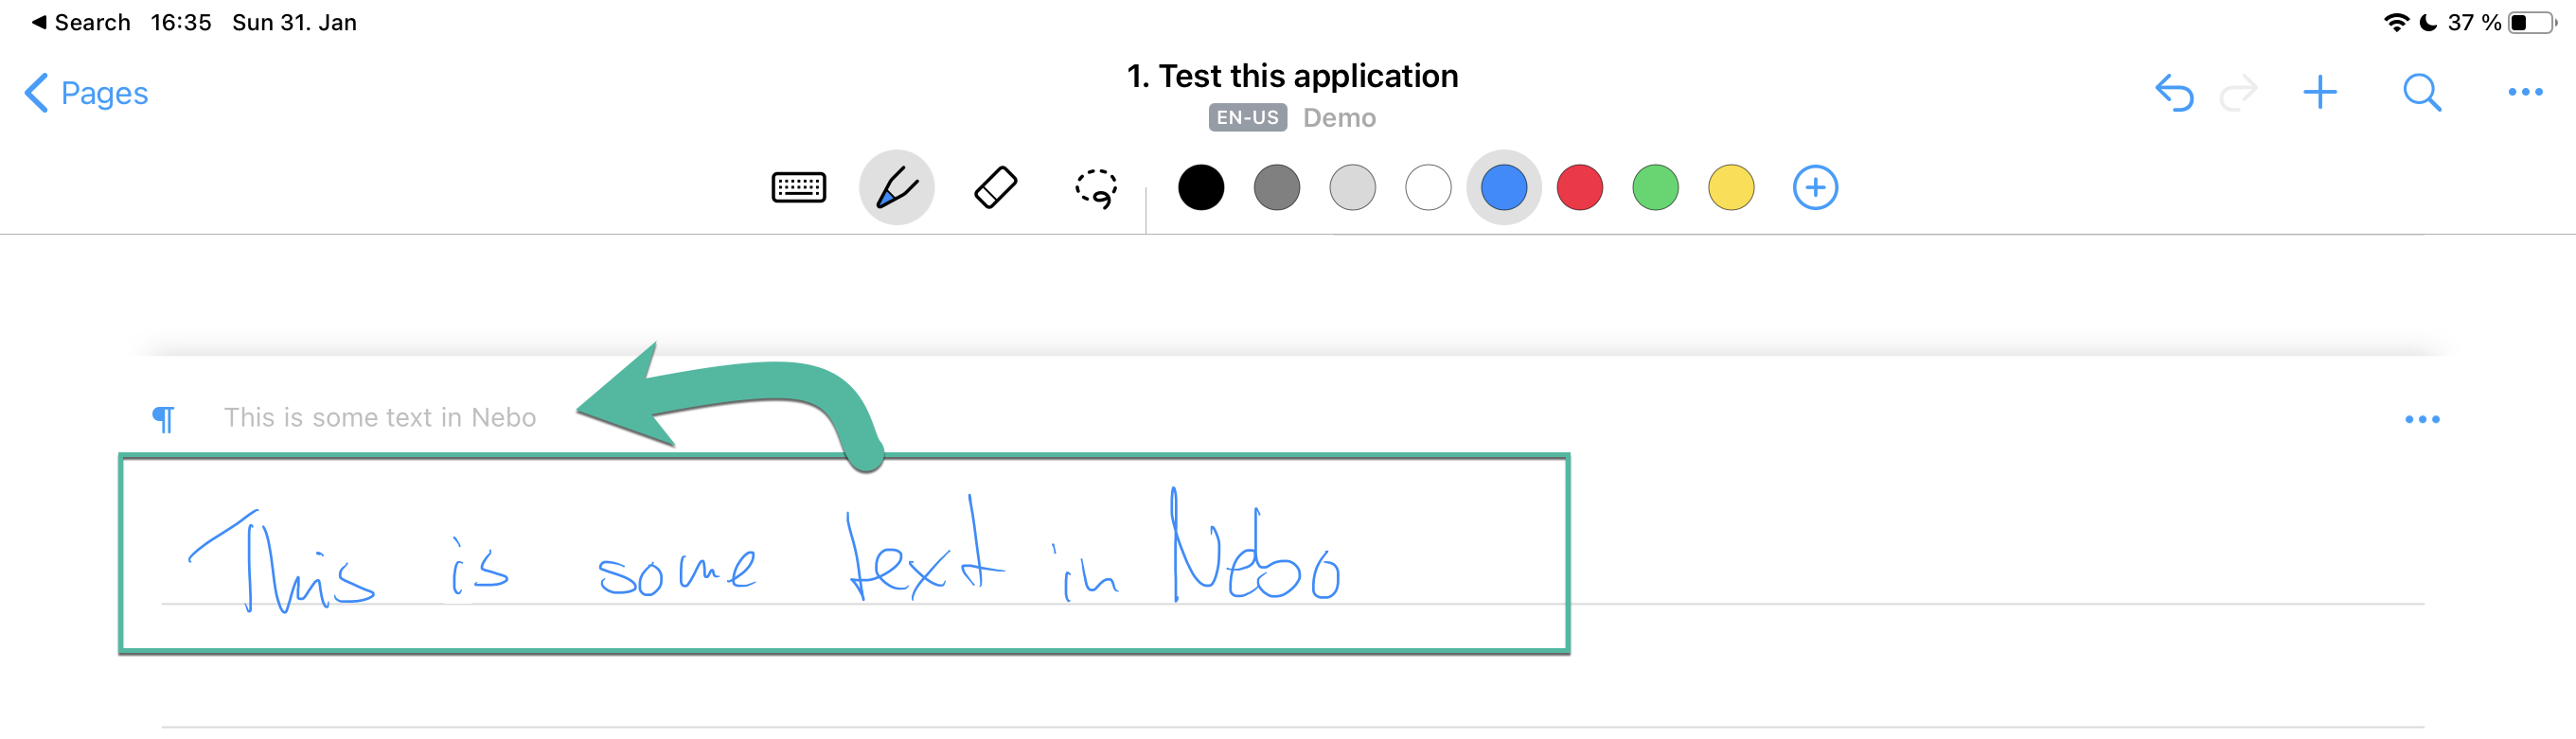 Nebo Review - Realtime Text Conversion